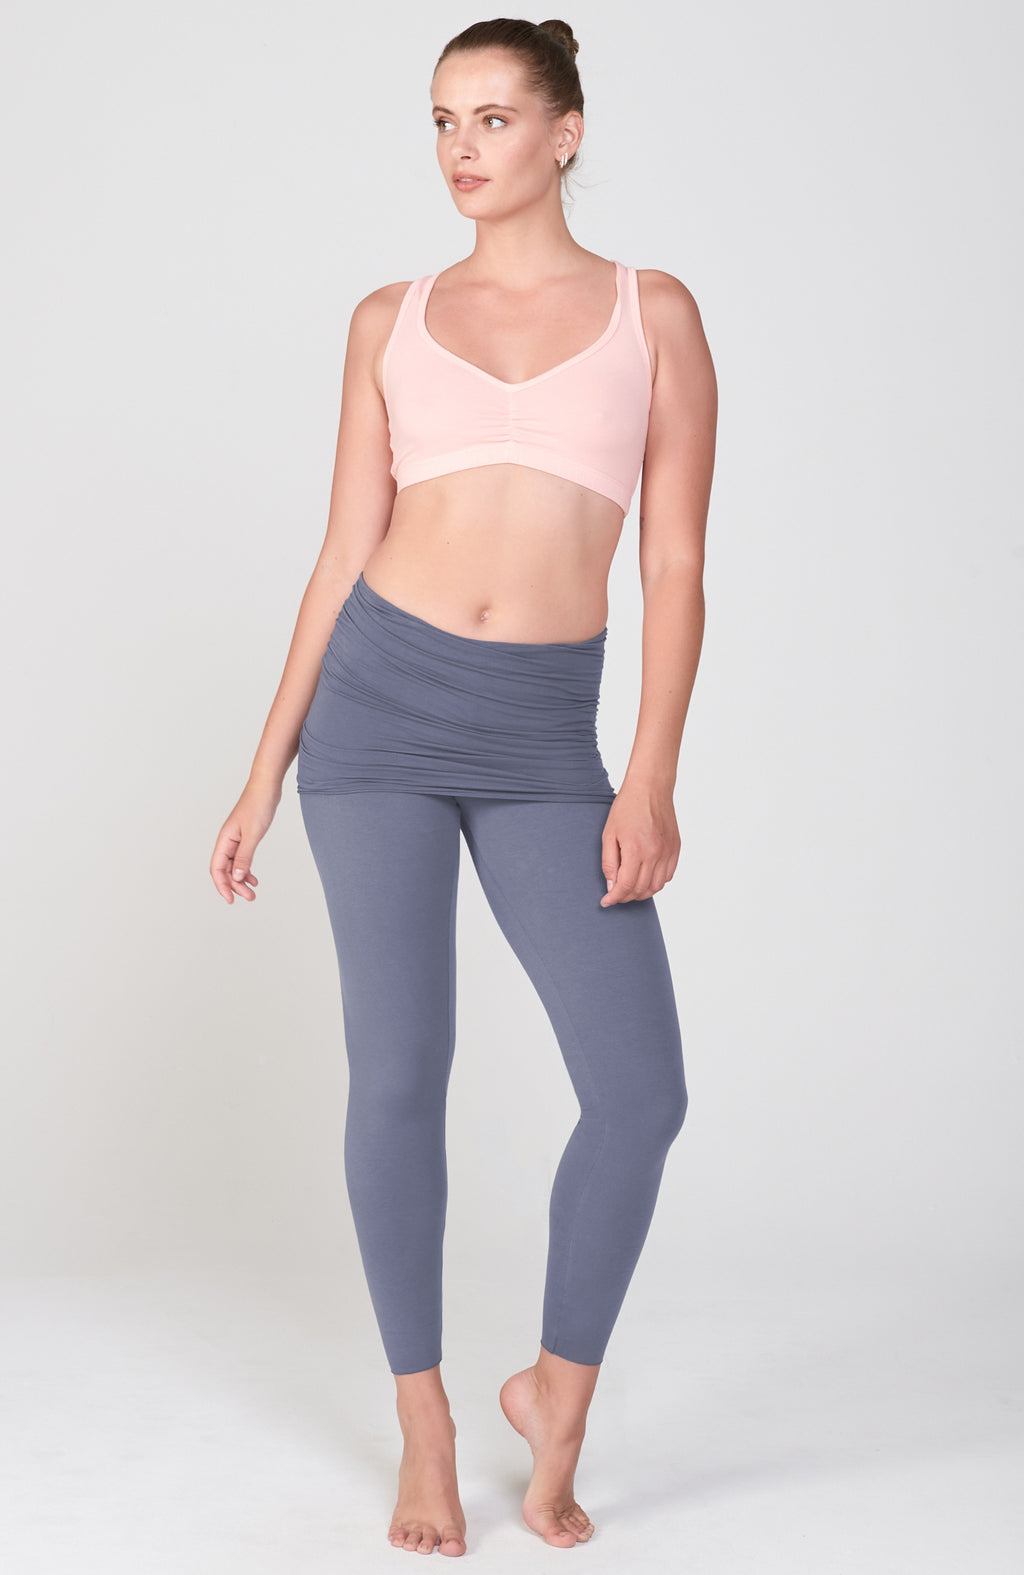 Nomad Legging in Denim Muse